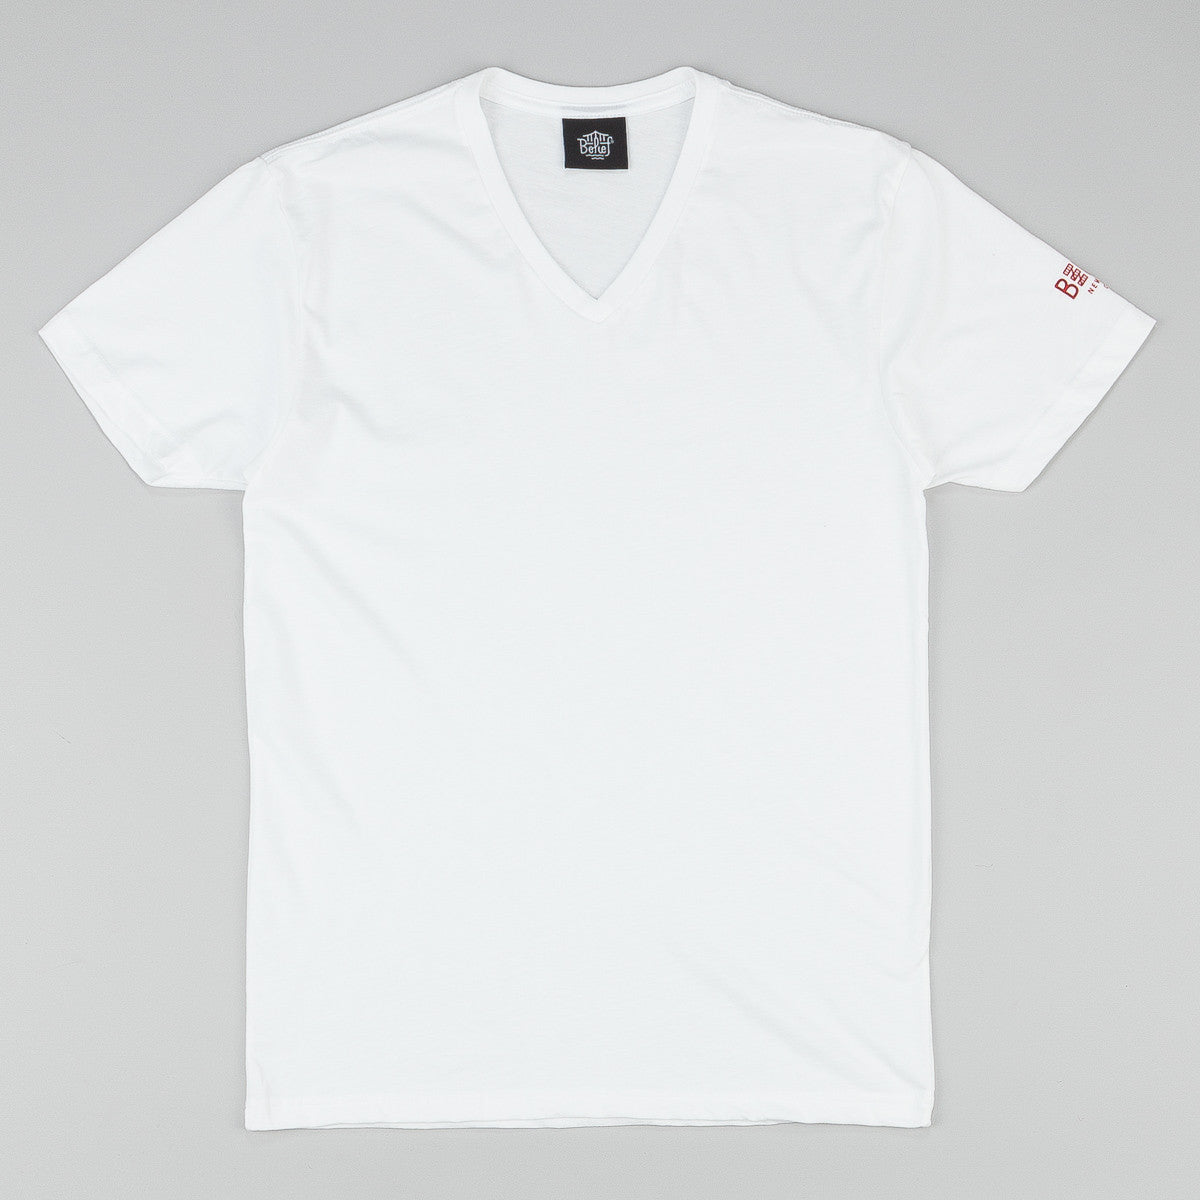 Belief City Block V-Neck T-Shirt - White